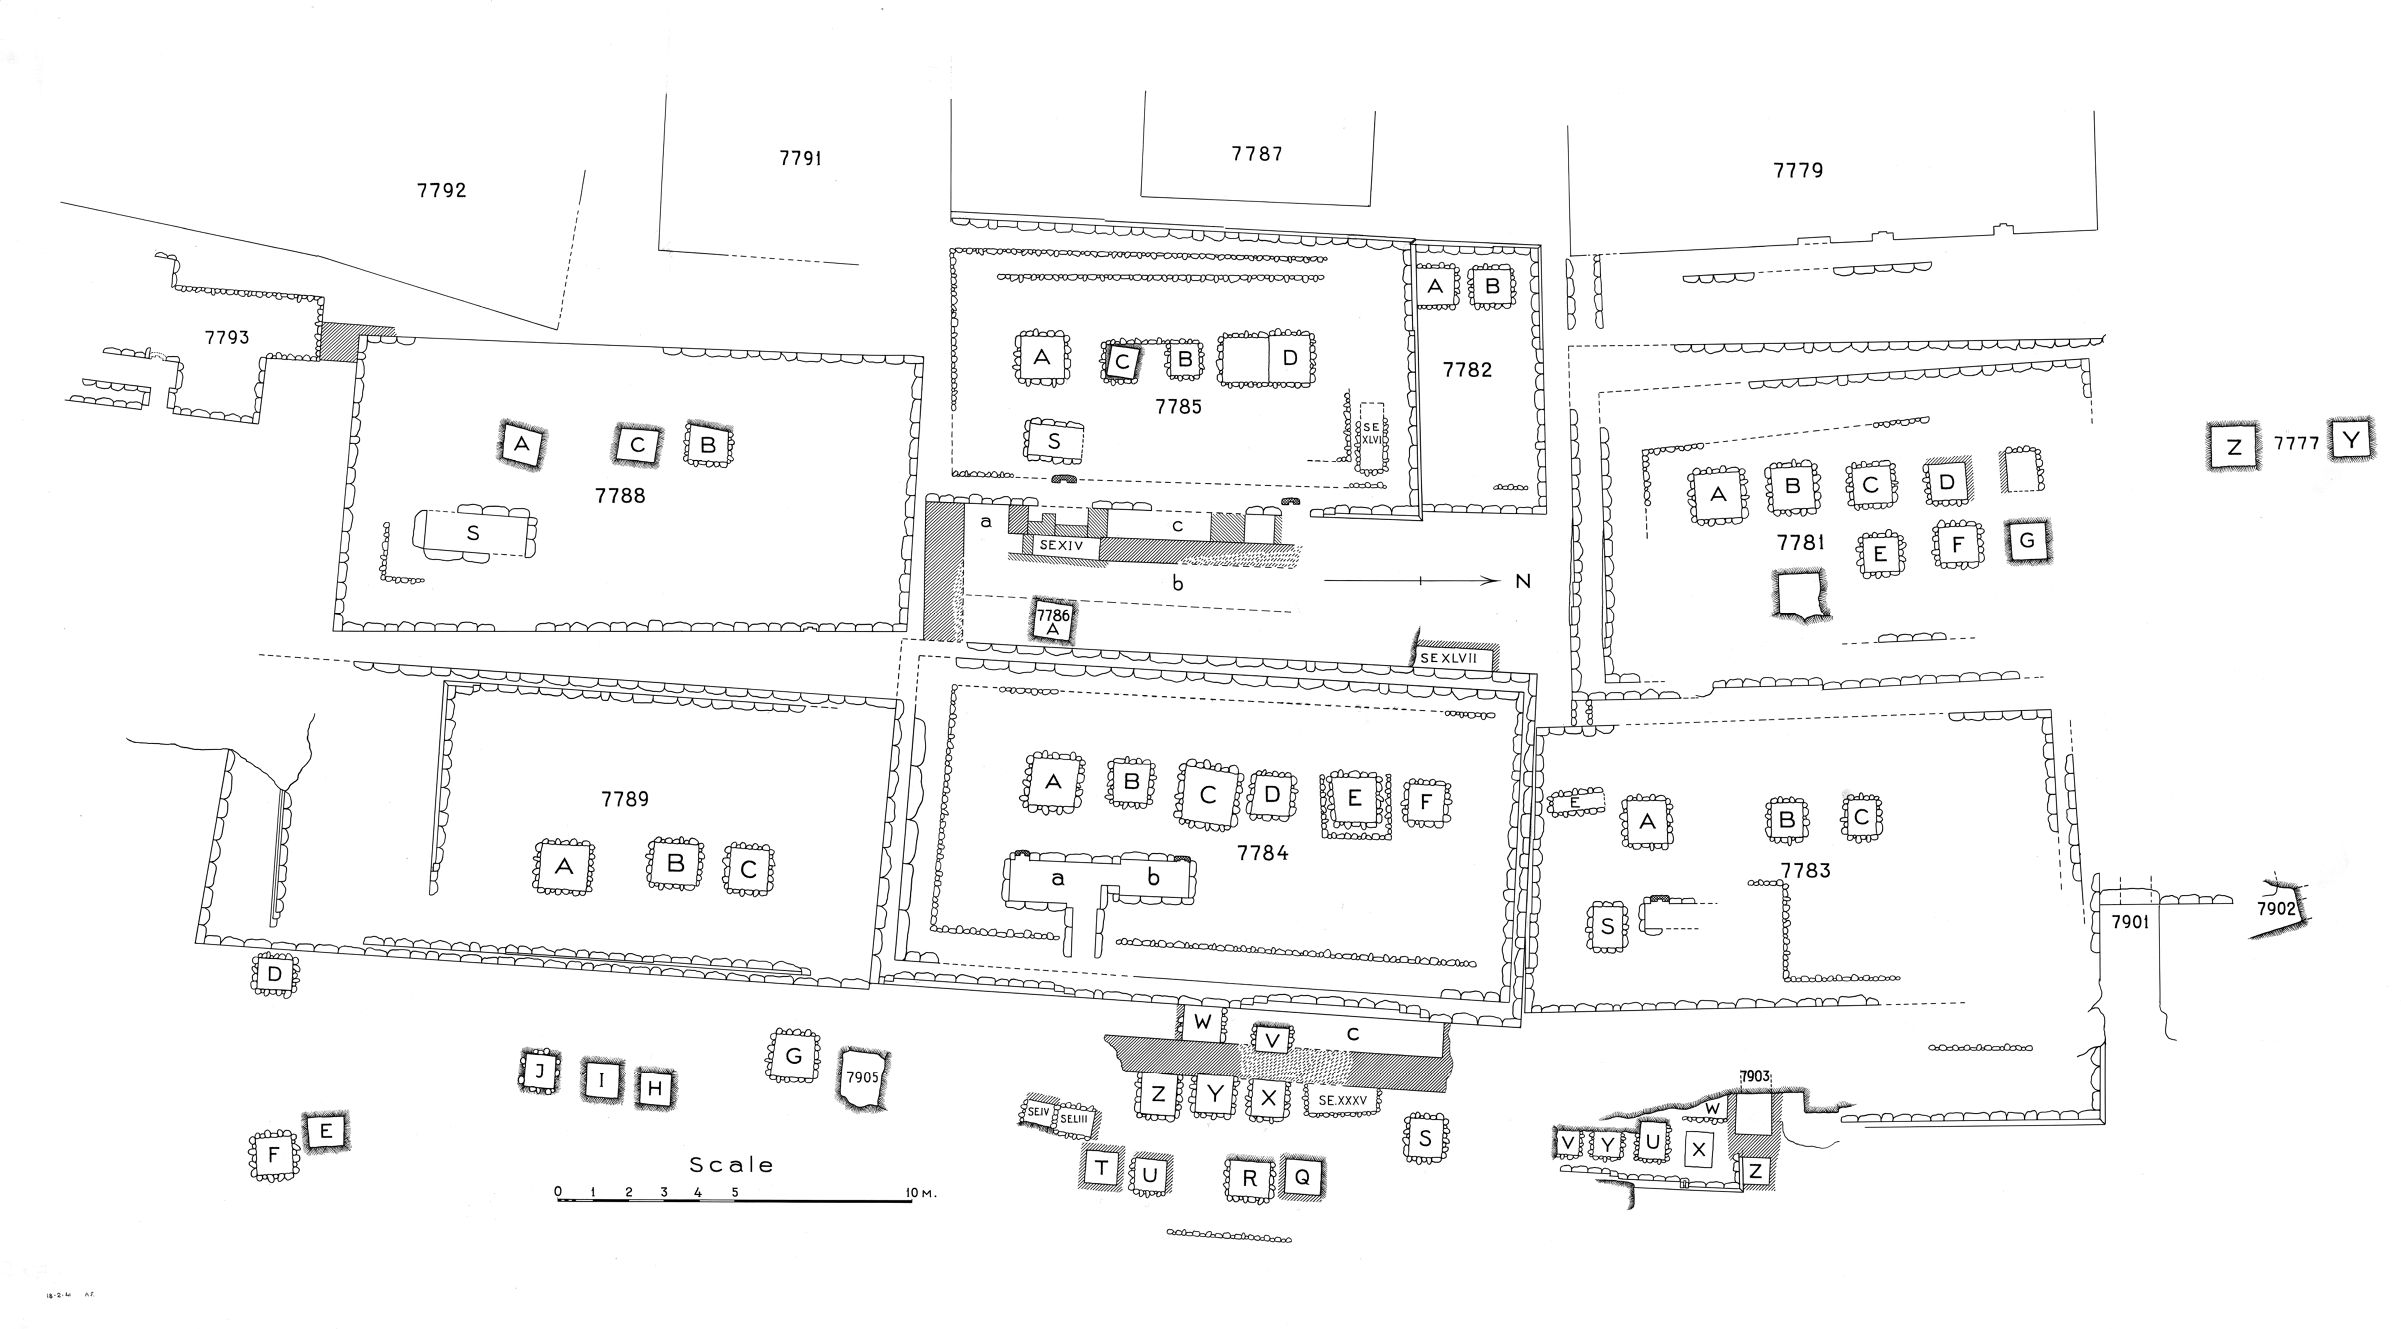 Maps and plans: Plan of cemetery G 7000: G 7700s (2 of 2)